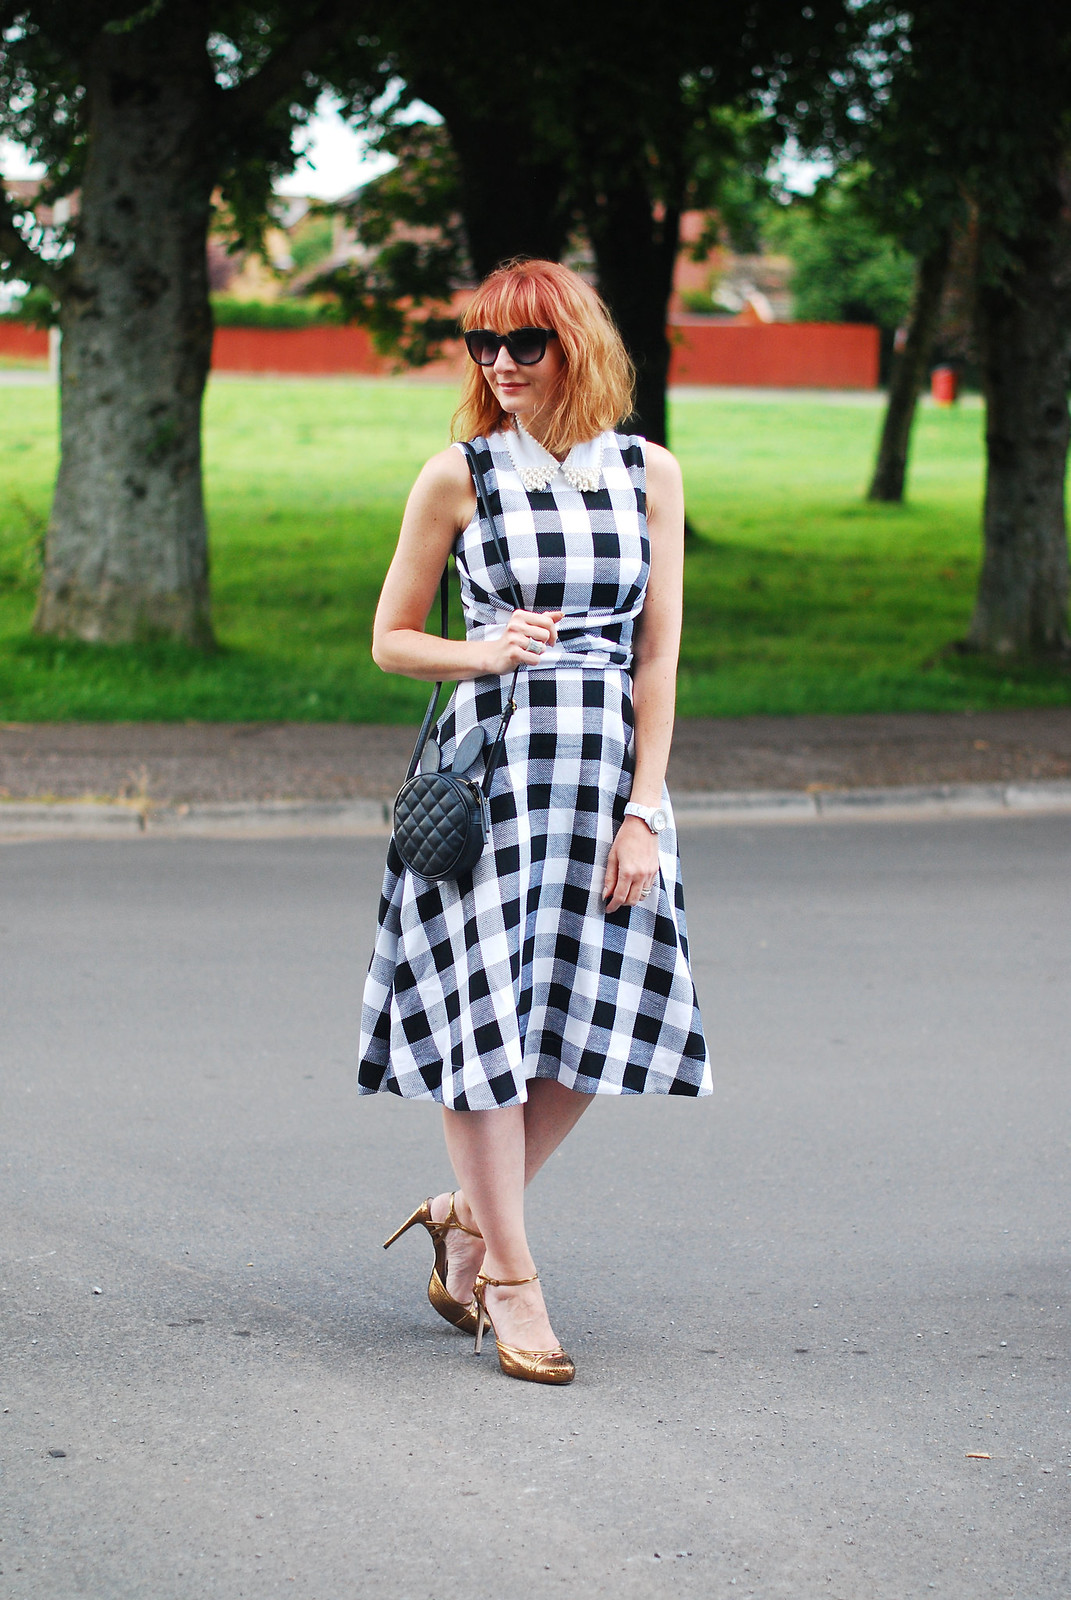 Classic summer dressing: Bardot-style gingham dress, bronze heels, pearl embellished collar | Not Dressed As Lamb